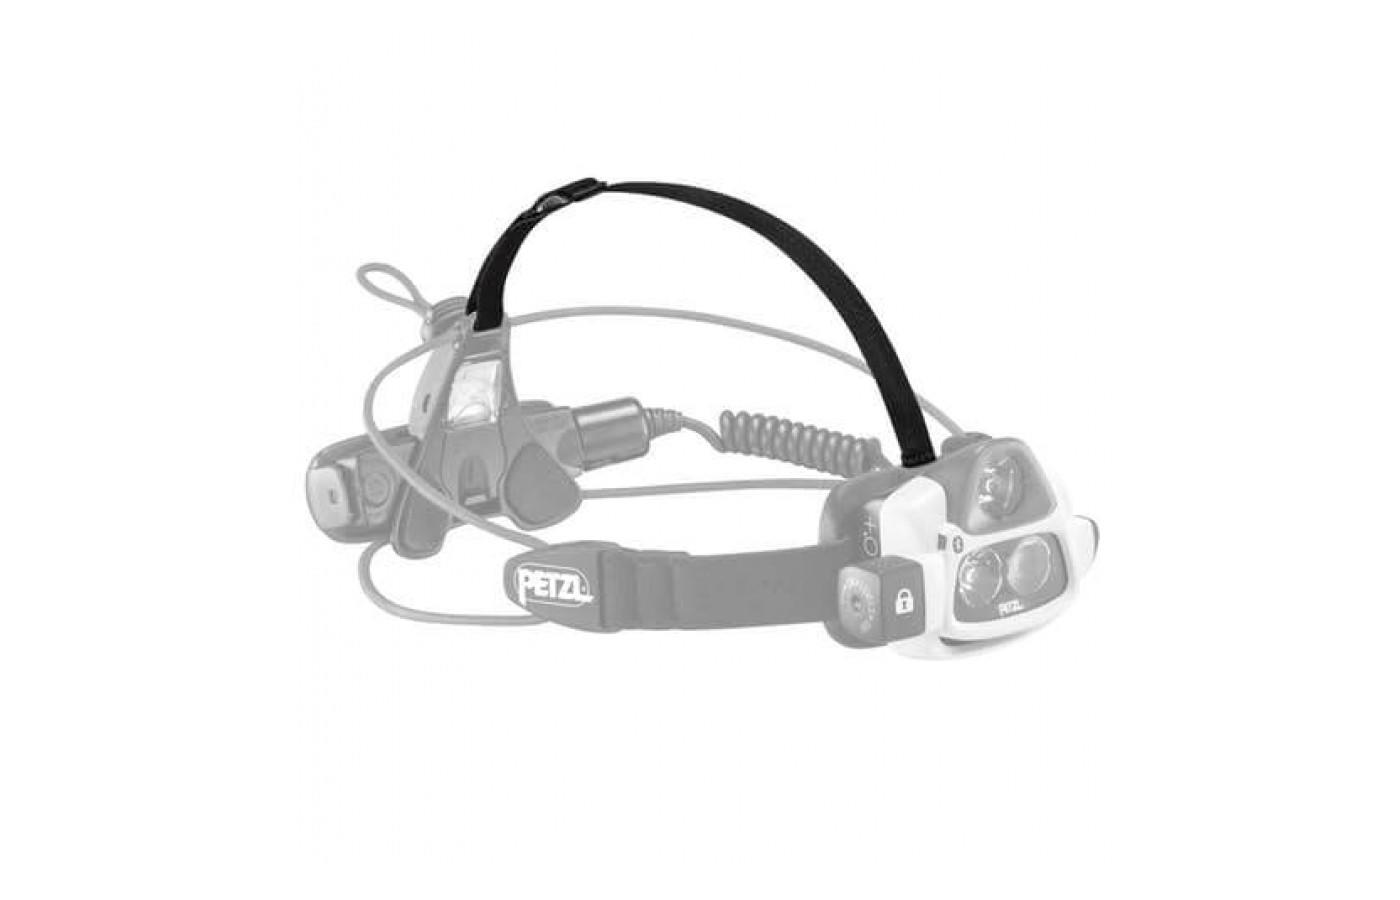 The Petzl NAO+ Headlamp's battery pack can be worn on the head or at the waist